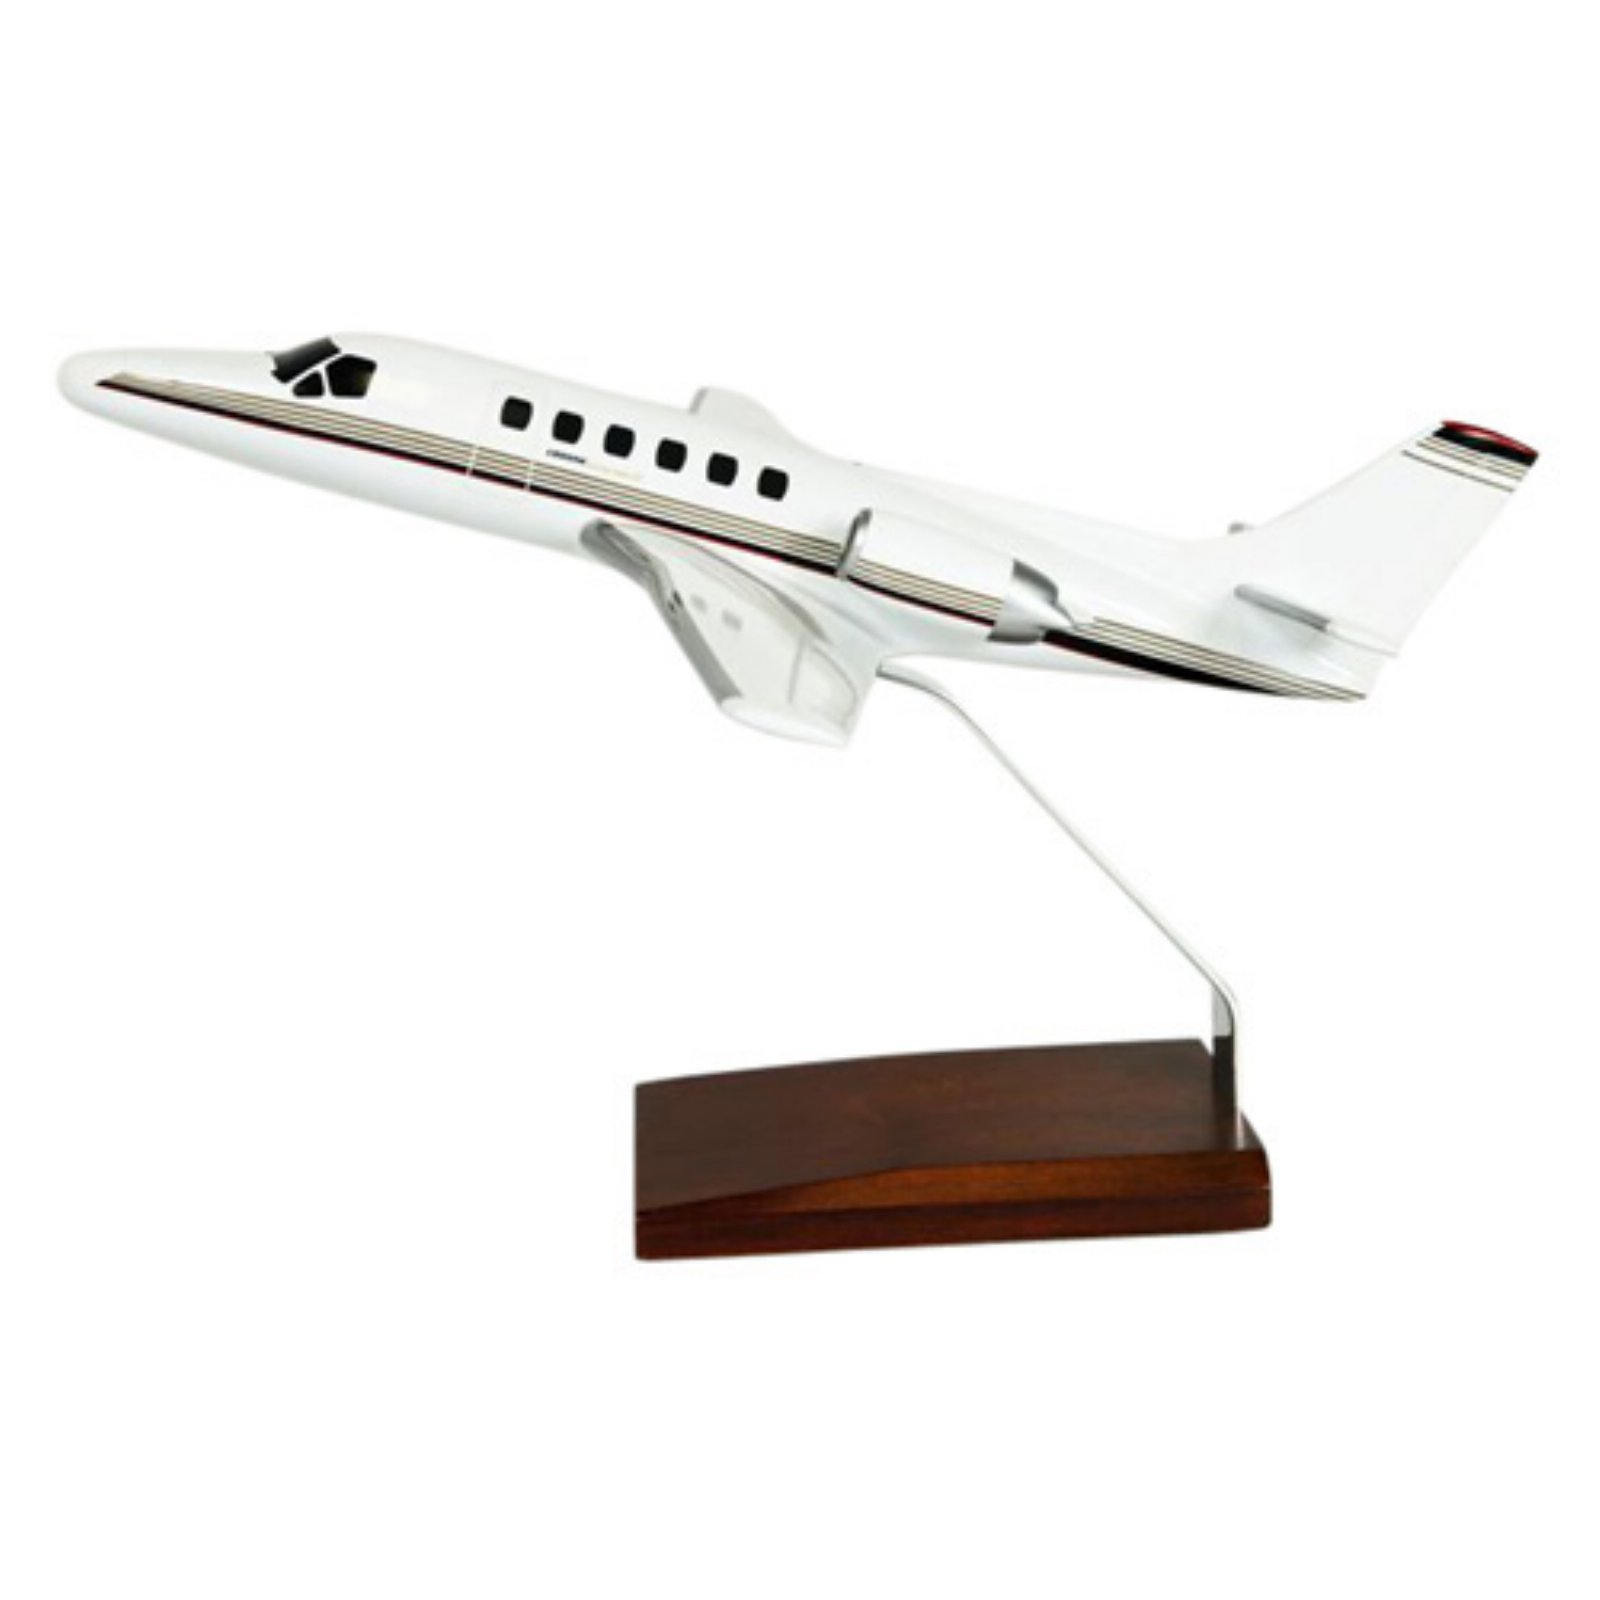 Daron Worldwide Cessna Citation II Model Airplane by Toys and Models Corporation